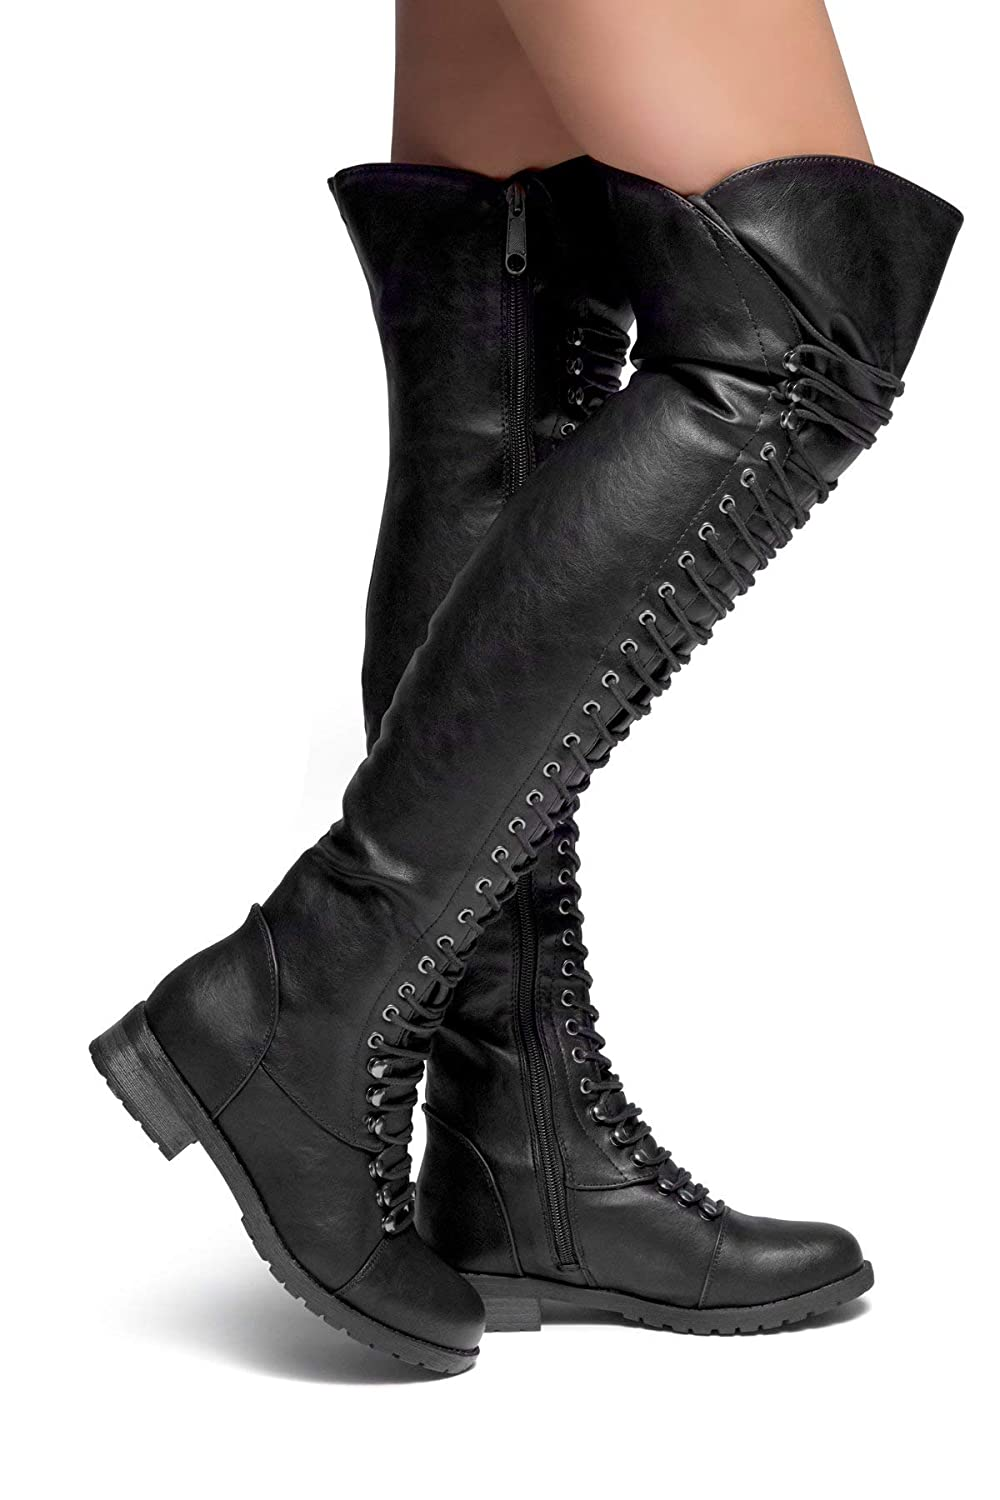 Women's Black Over the Knee Lace-Up Thigh-High Boots - DeluxeAdultCostumes.com